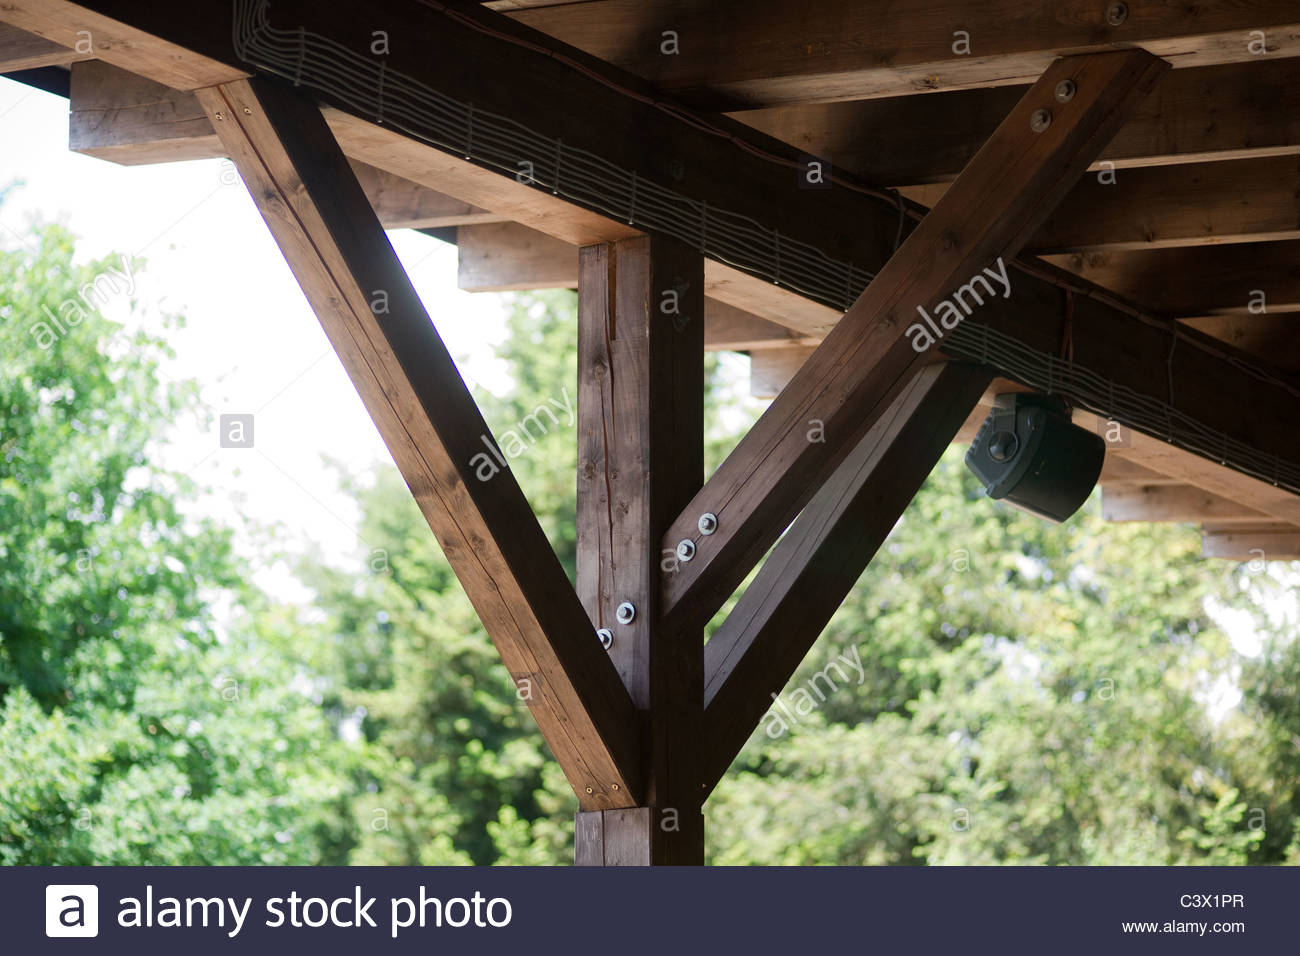 roof architecture structure support diagonal post - Stock Image